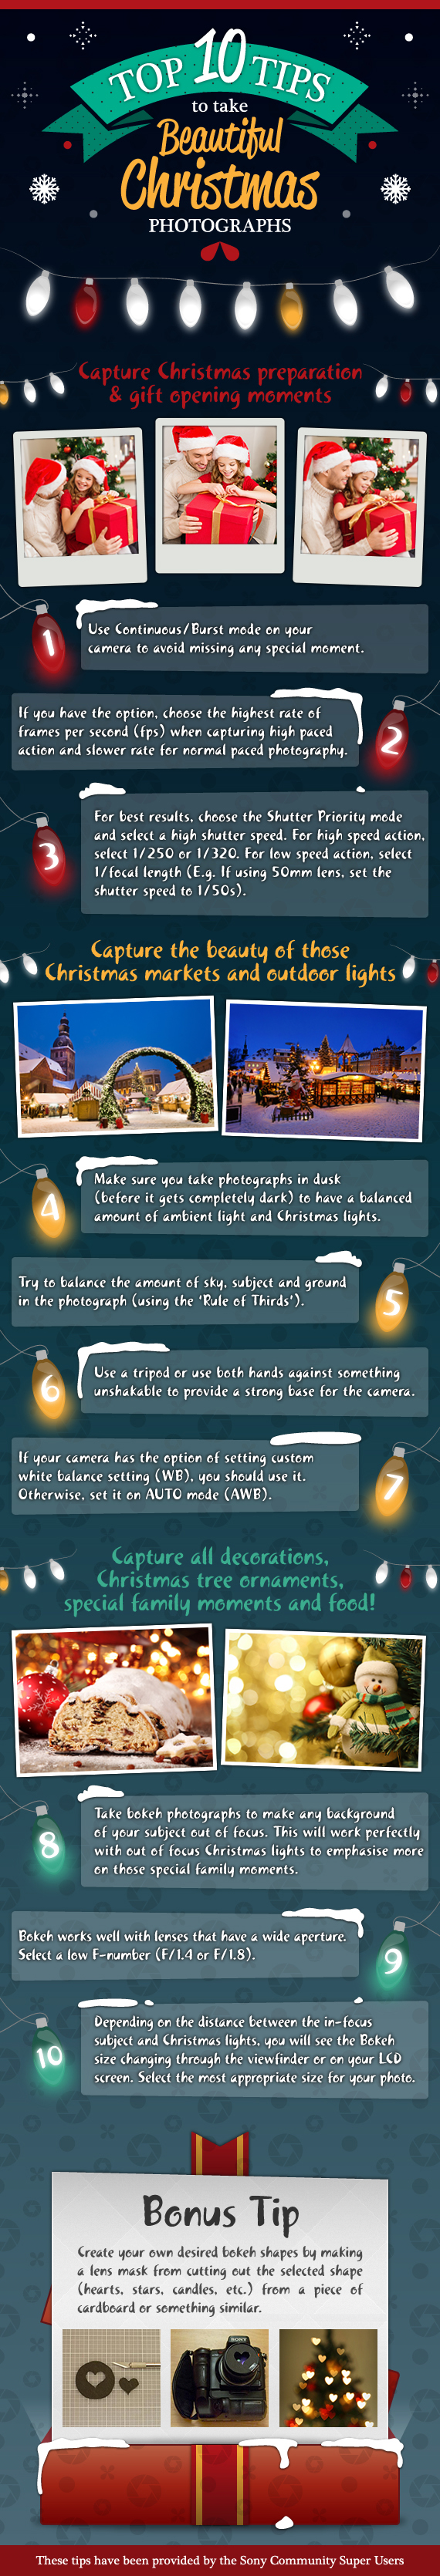 Top 10 tips to take beautiful Christmas photographs - Infographic